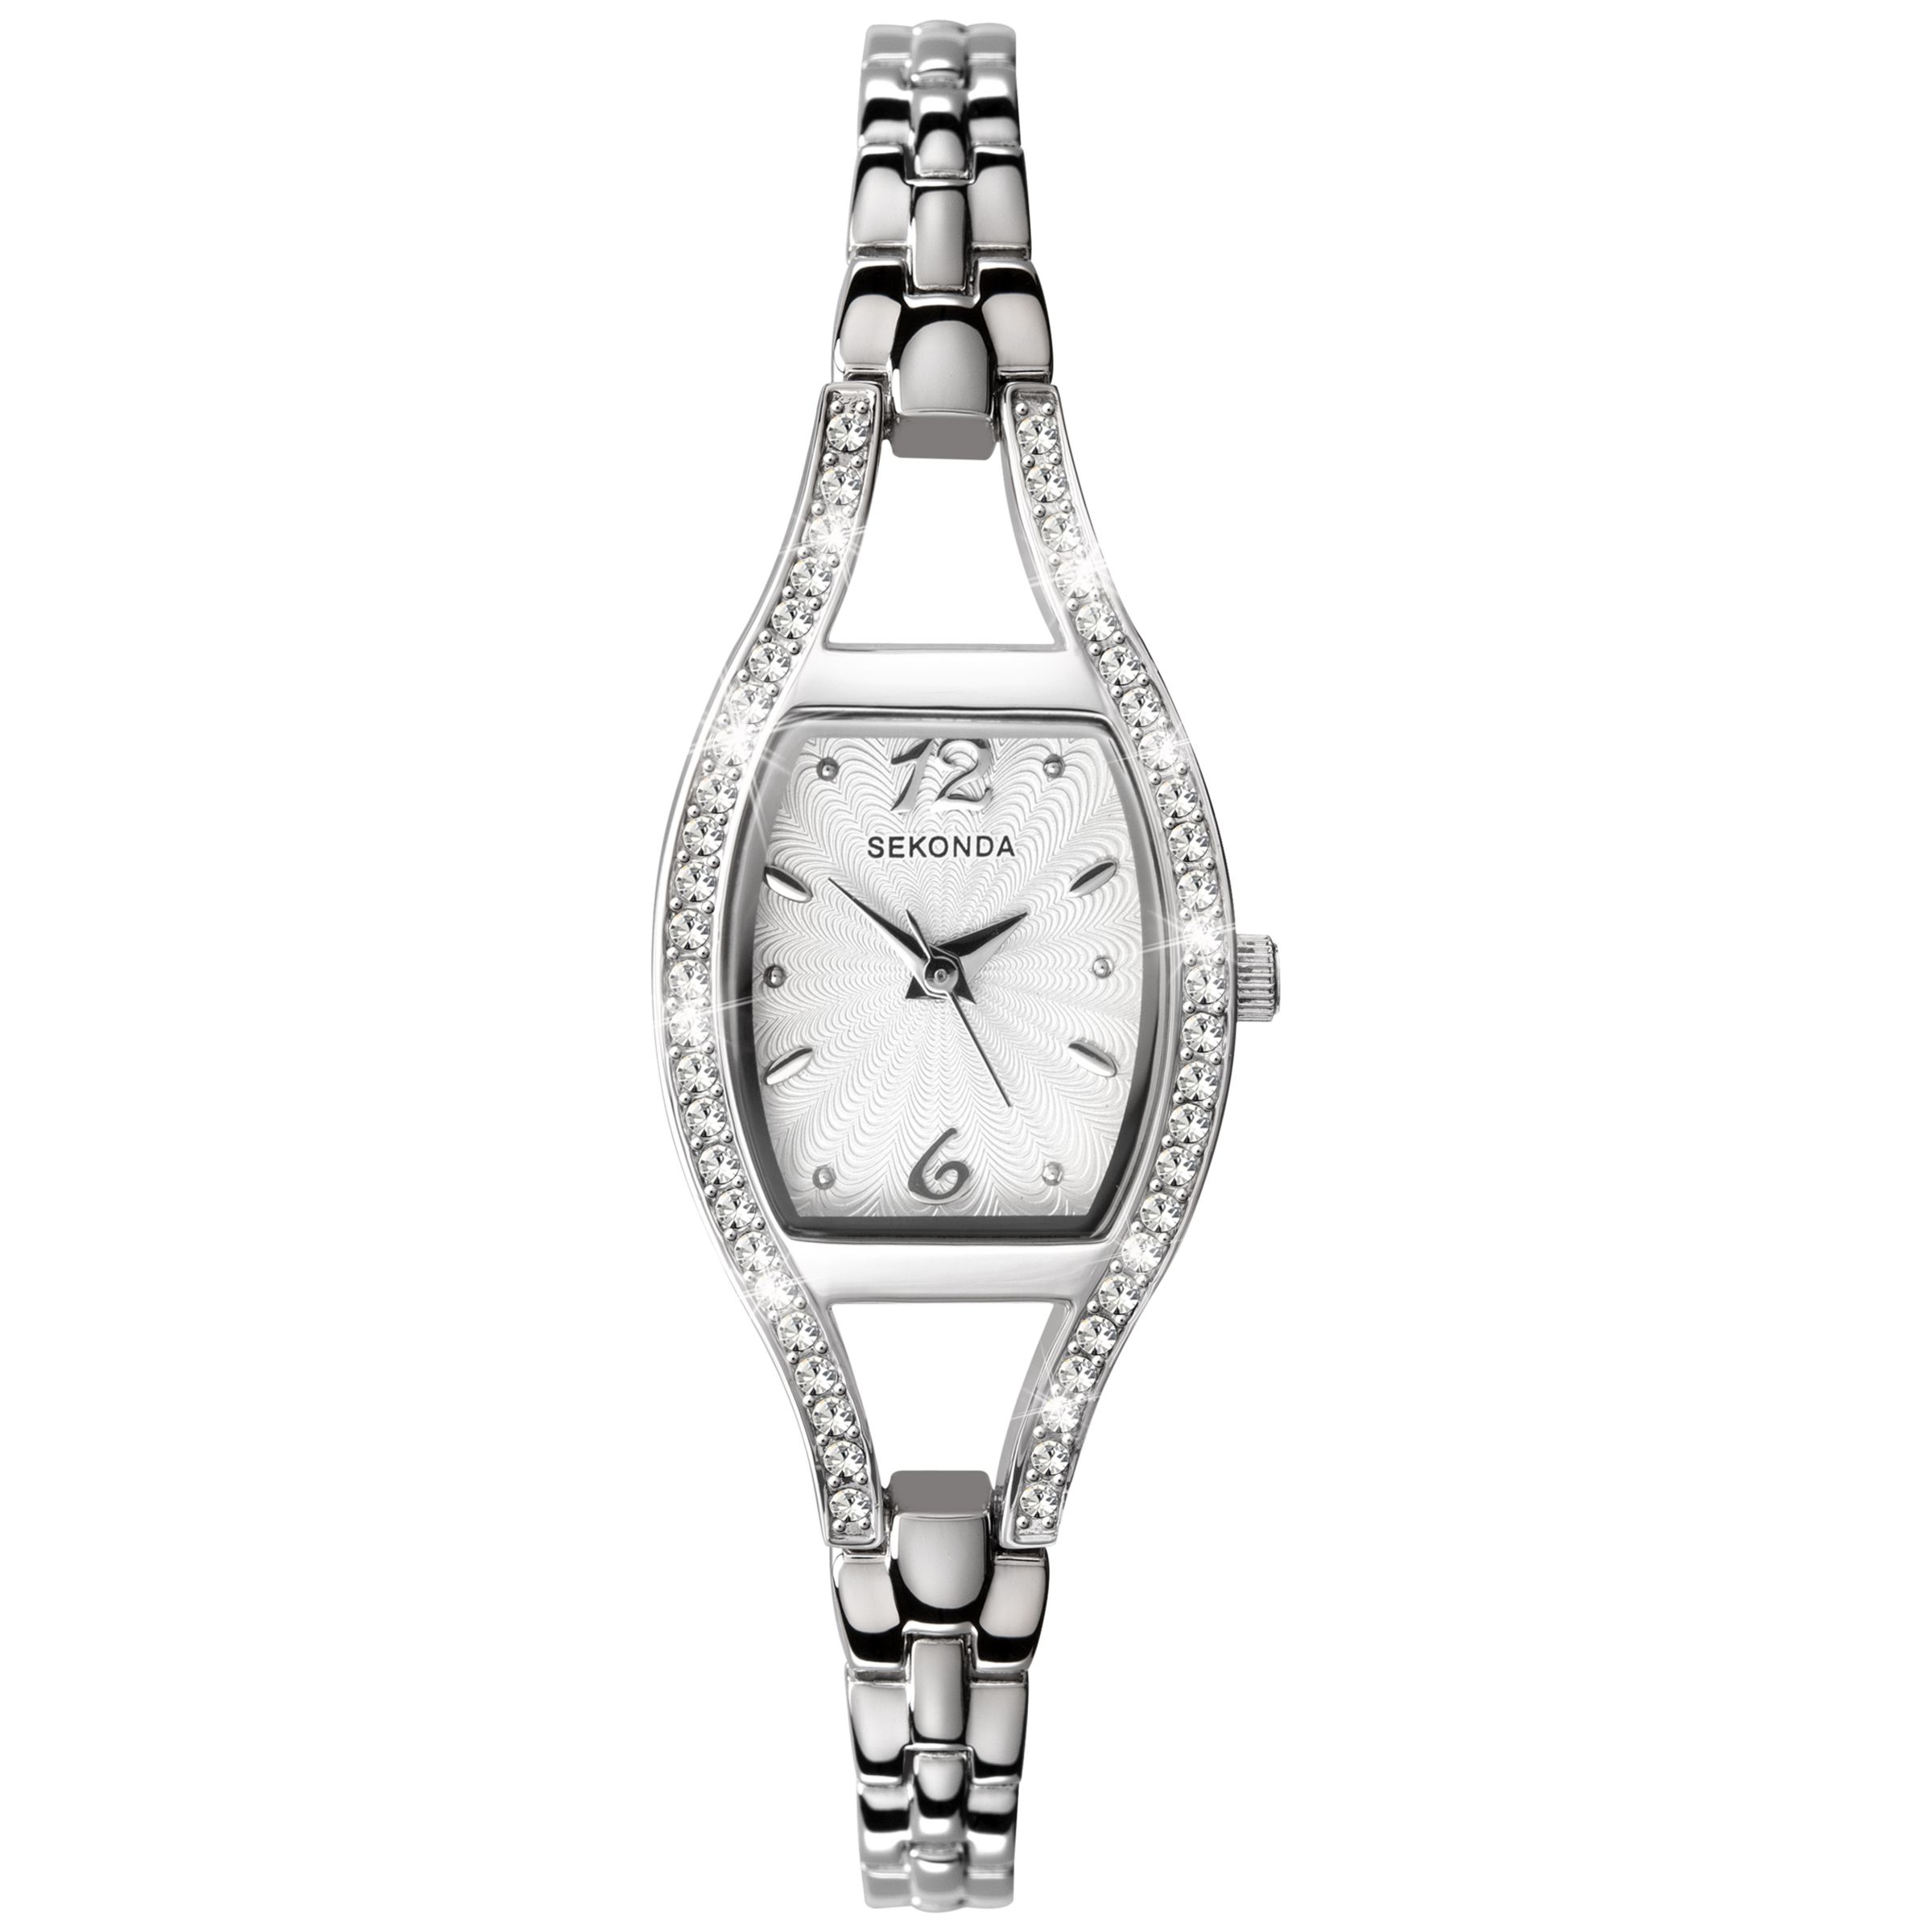 Sekonda Sekonda 4191.27 Women's Diamante Bezel Stainless Steel Bracelet Strap Watch, Silver